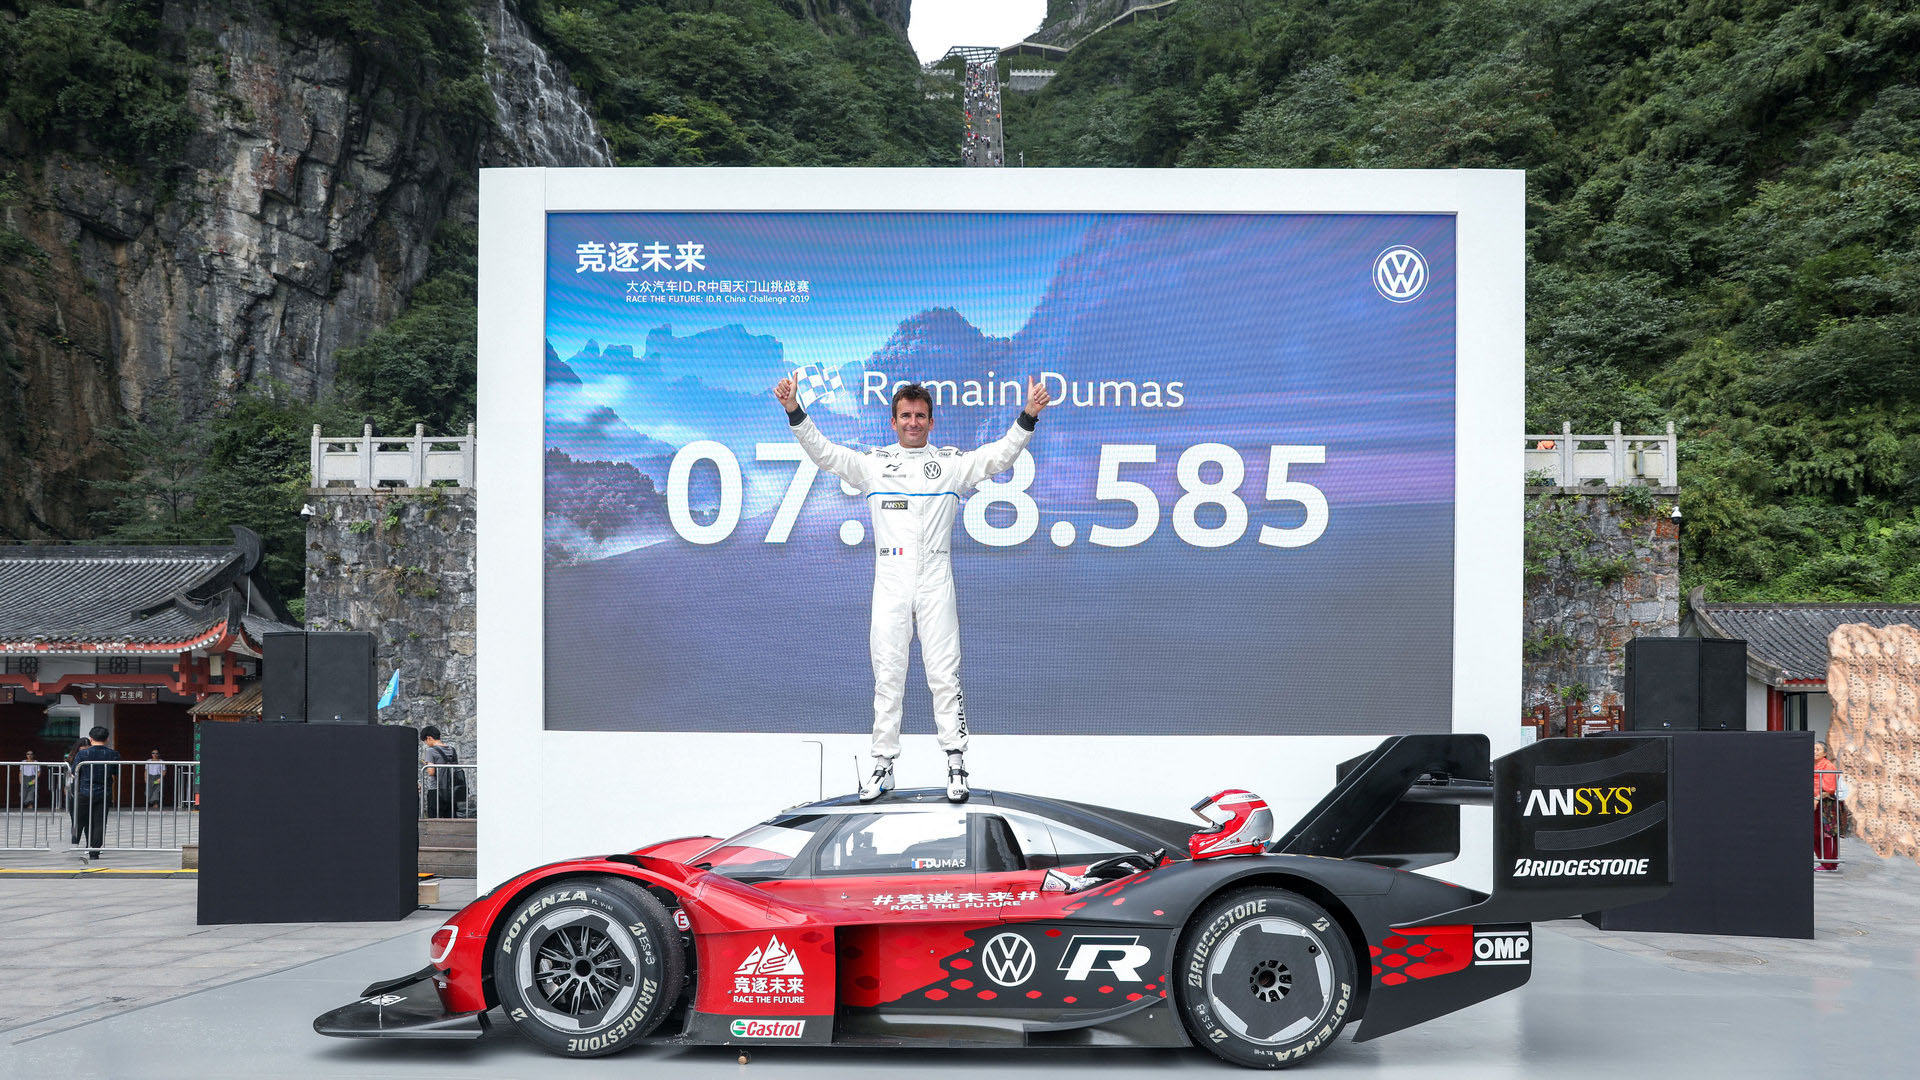 7:38.5 To The Top: Volkswagen ID.R Sets The Benchmark In China